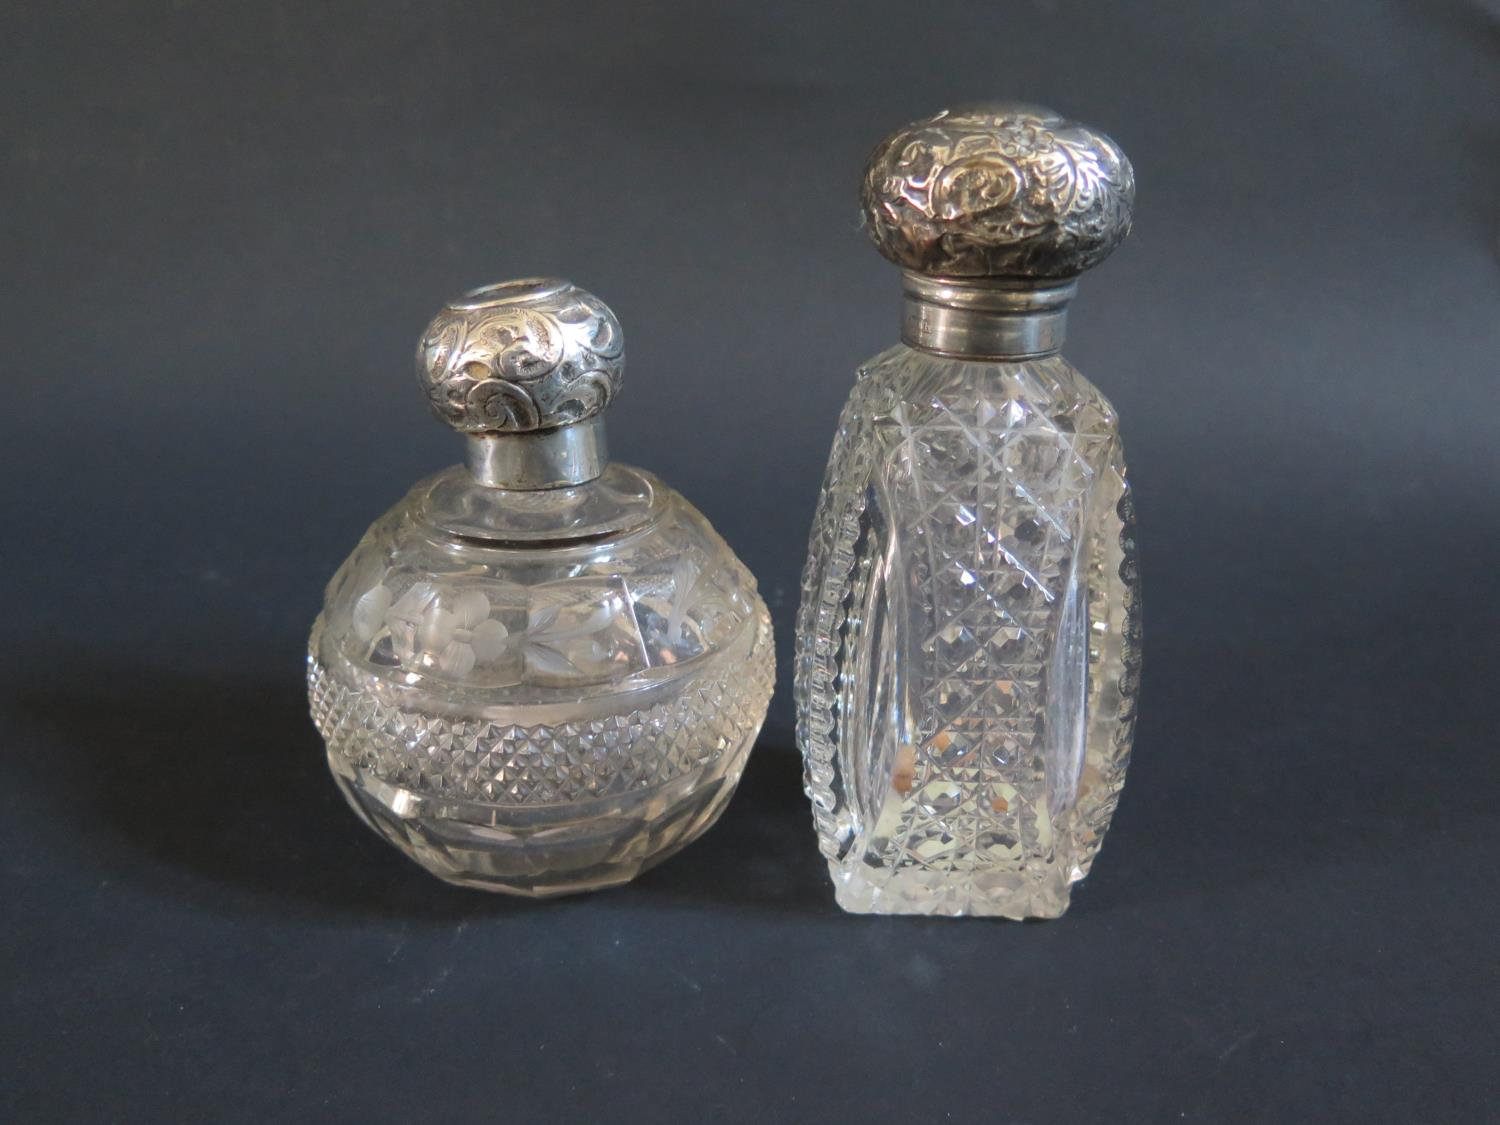 Lot 48 - Two Silver Topped Cut Glass Scent Bottles A/F